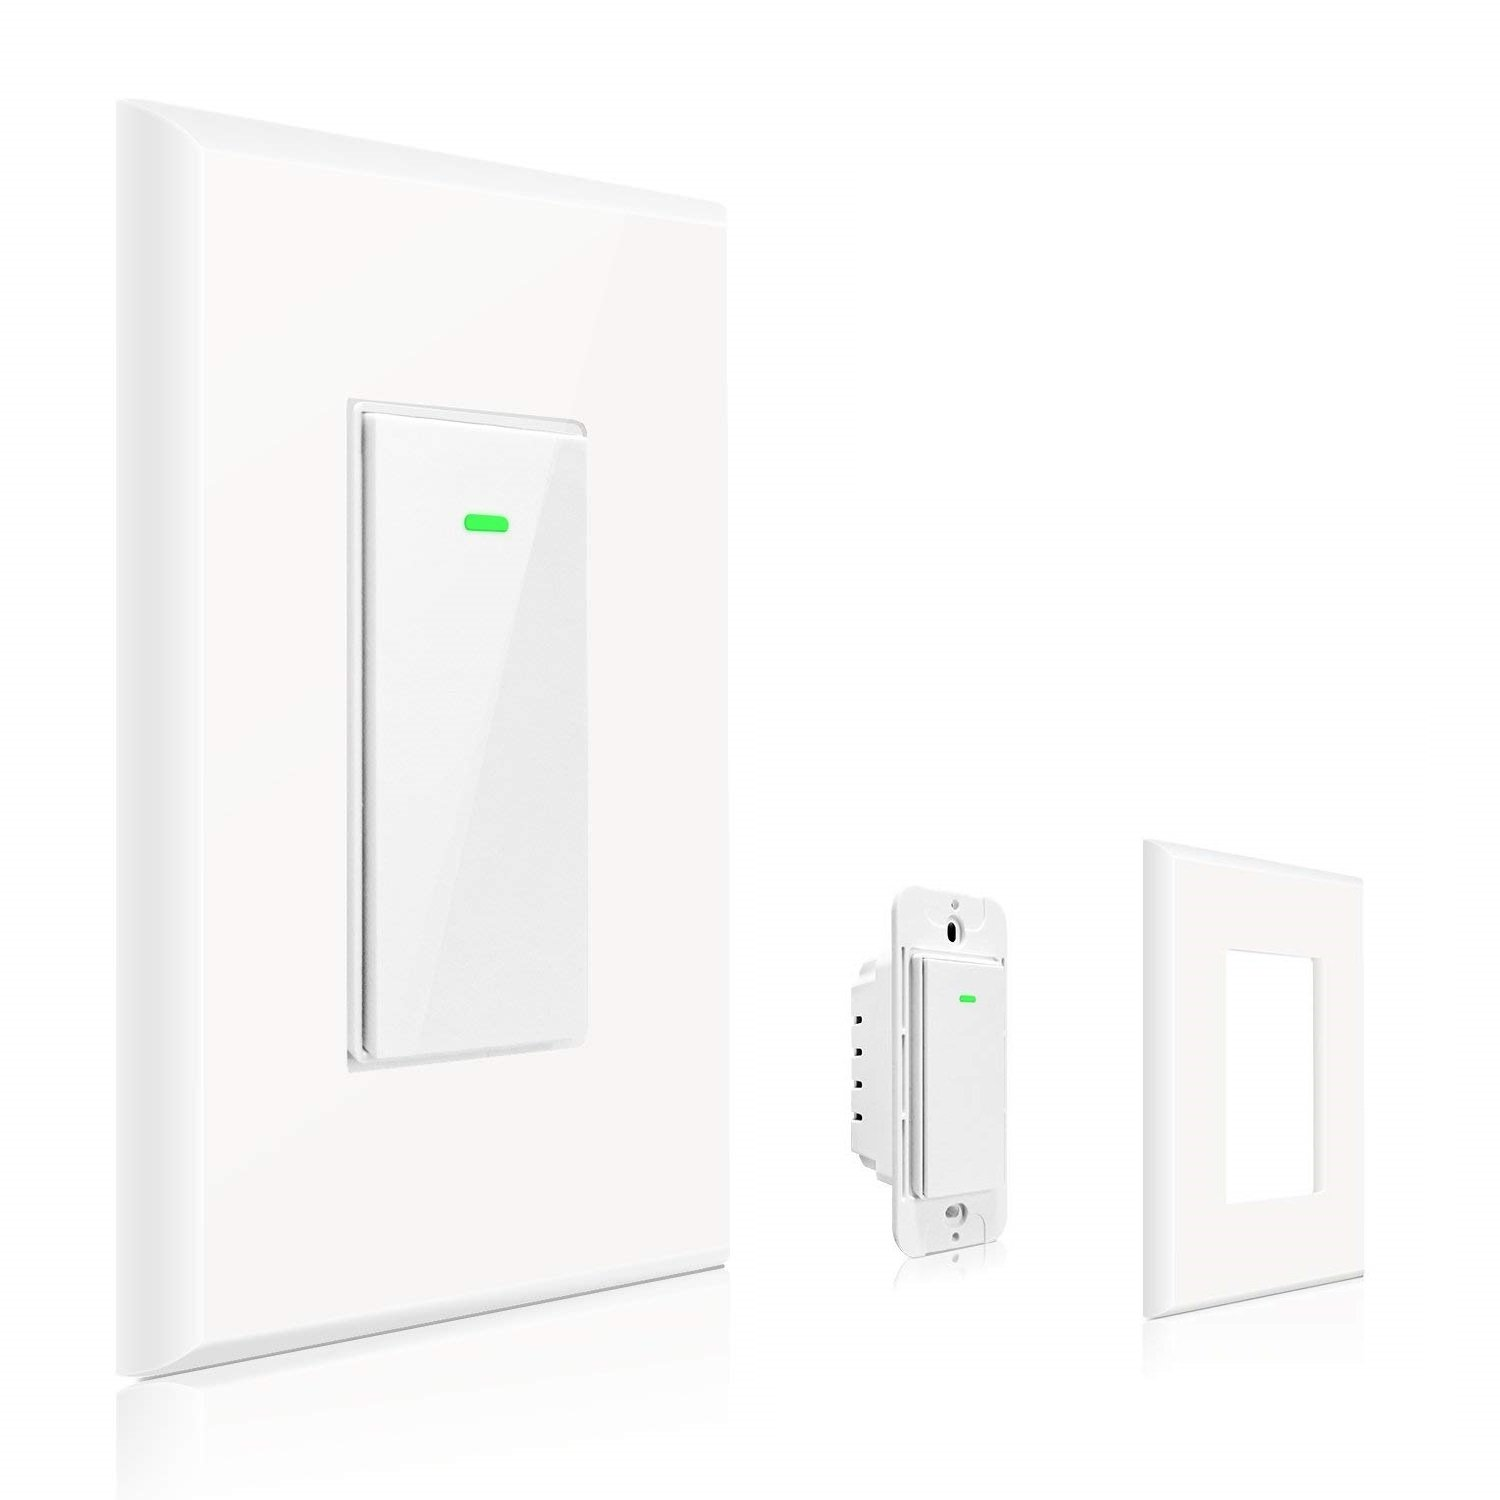 Maxcio Smart Wi-Fi Light Switch, No Hub Required, Compatible with Amazon  Alexa and Google Assistant, Remote Control/Schedule Your Fixtures Anywhere  - 15A ...